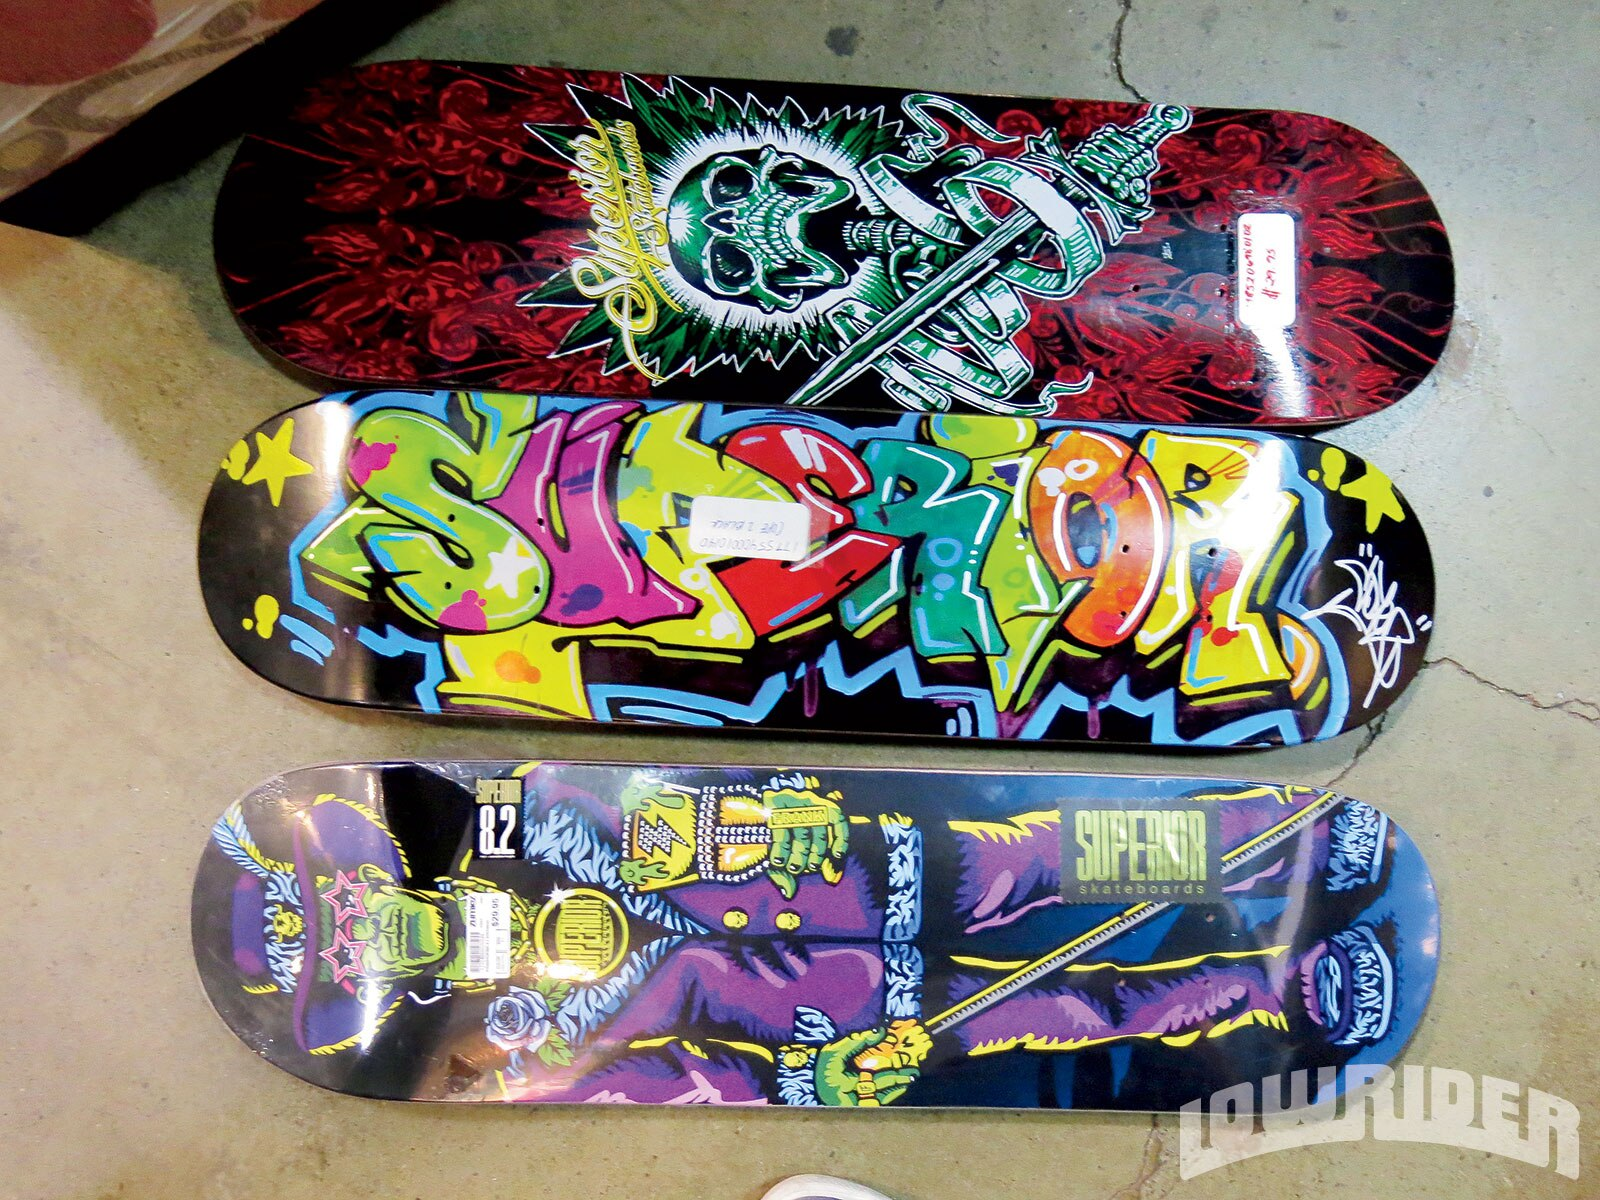 1307-the-art-of-skateboards-superior-skateboards